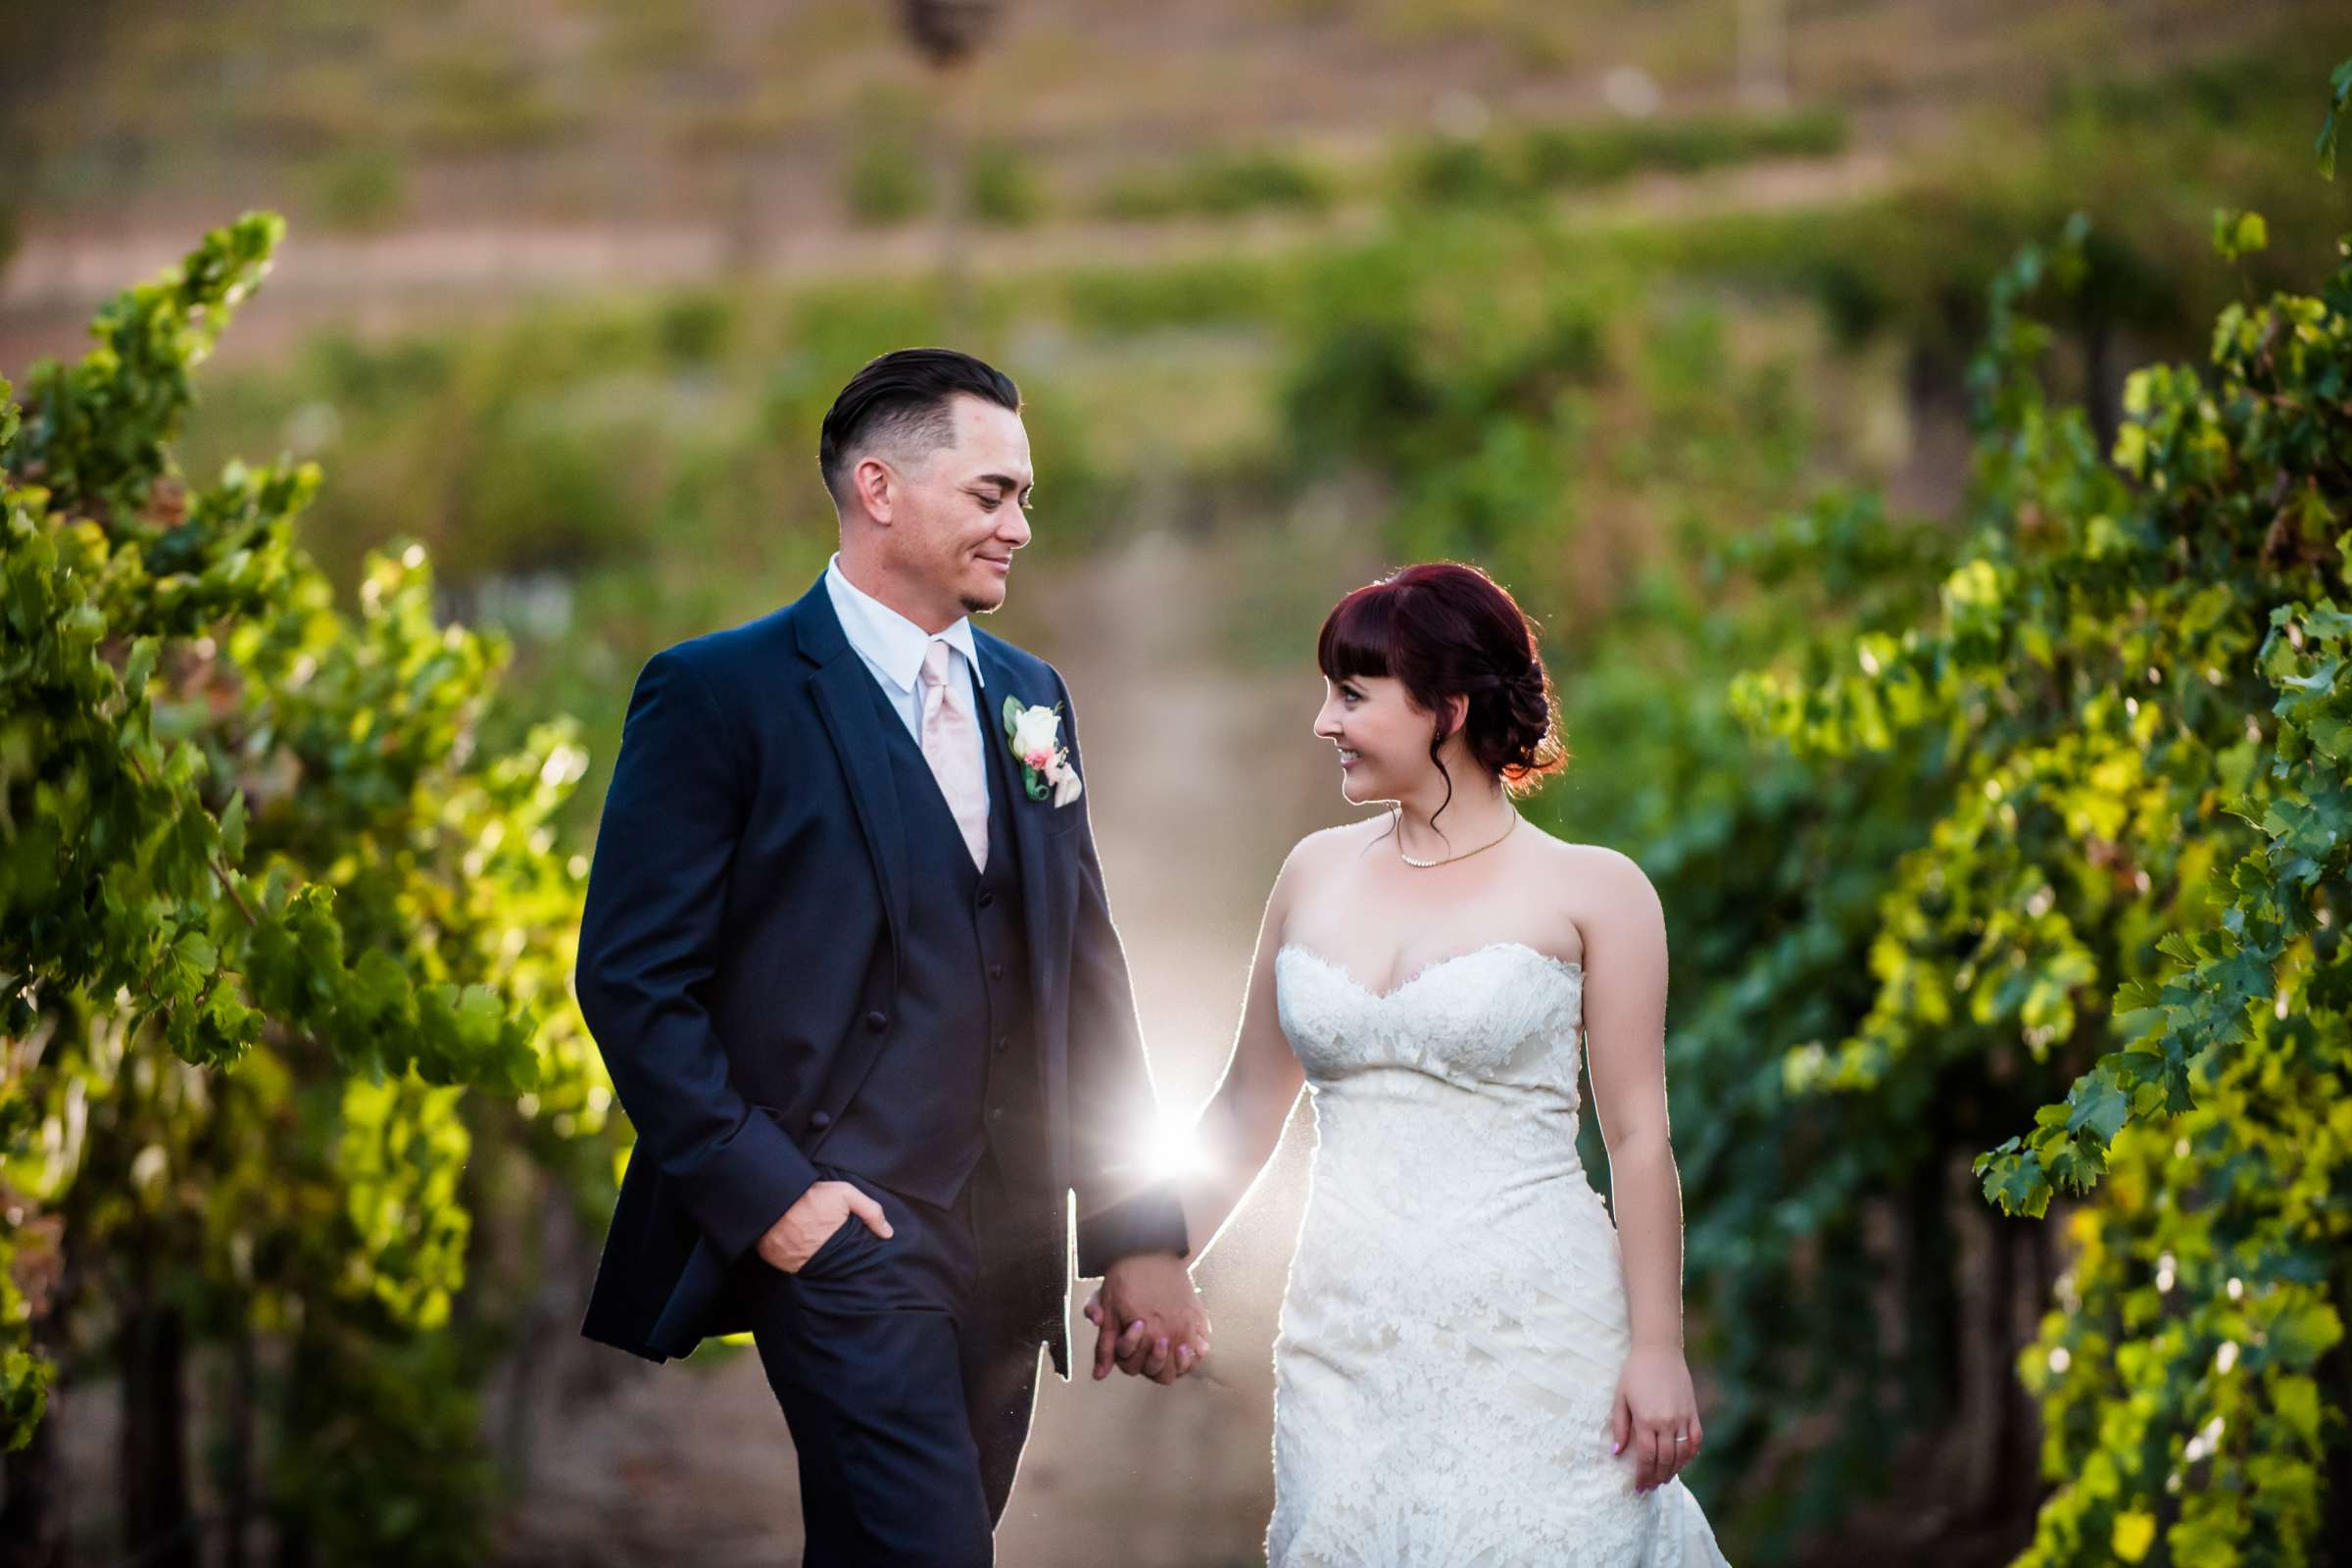 Orfila Vineyards Wedding, Tulasi and Richard Wedding Photo #44 by True Photography